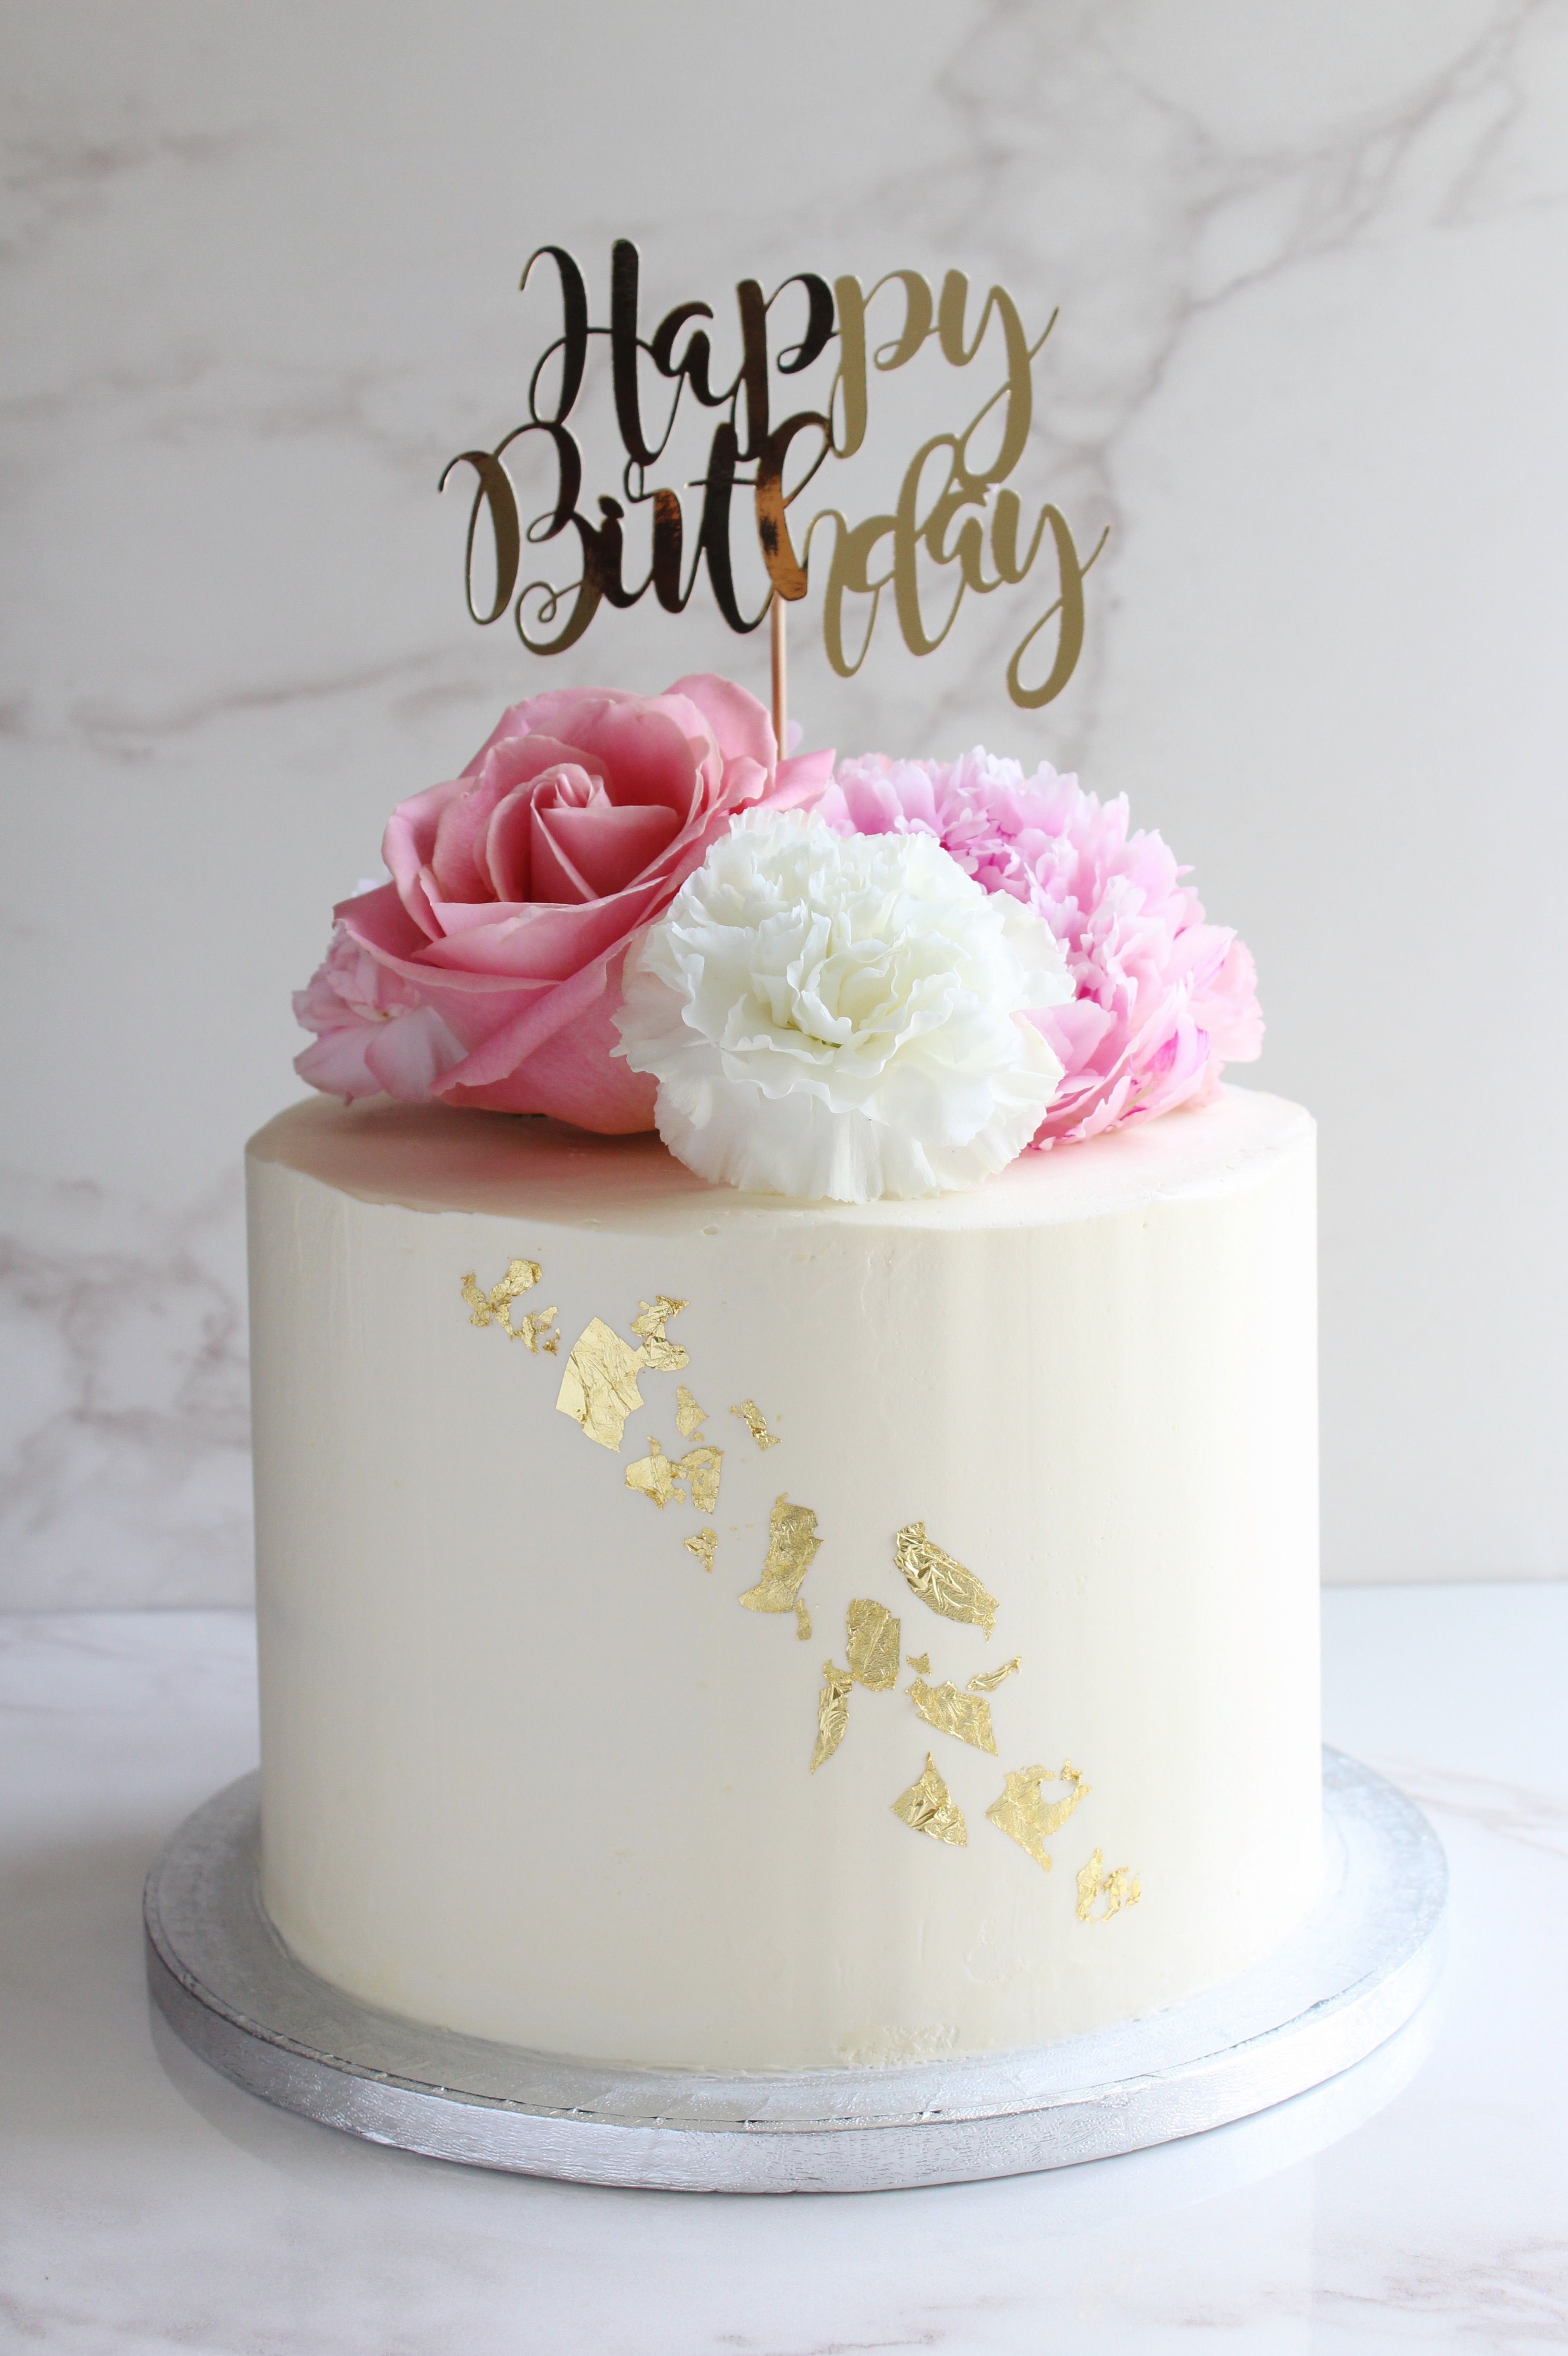 Enjoyable Lemon And Elderflower Cake With Fresh Flowers And Gold Leaf With Funny Birthday Cards Online Elaedamsfinfo